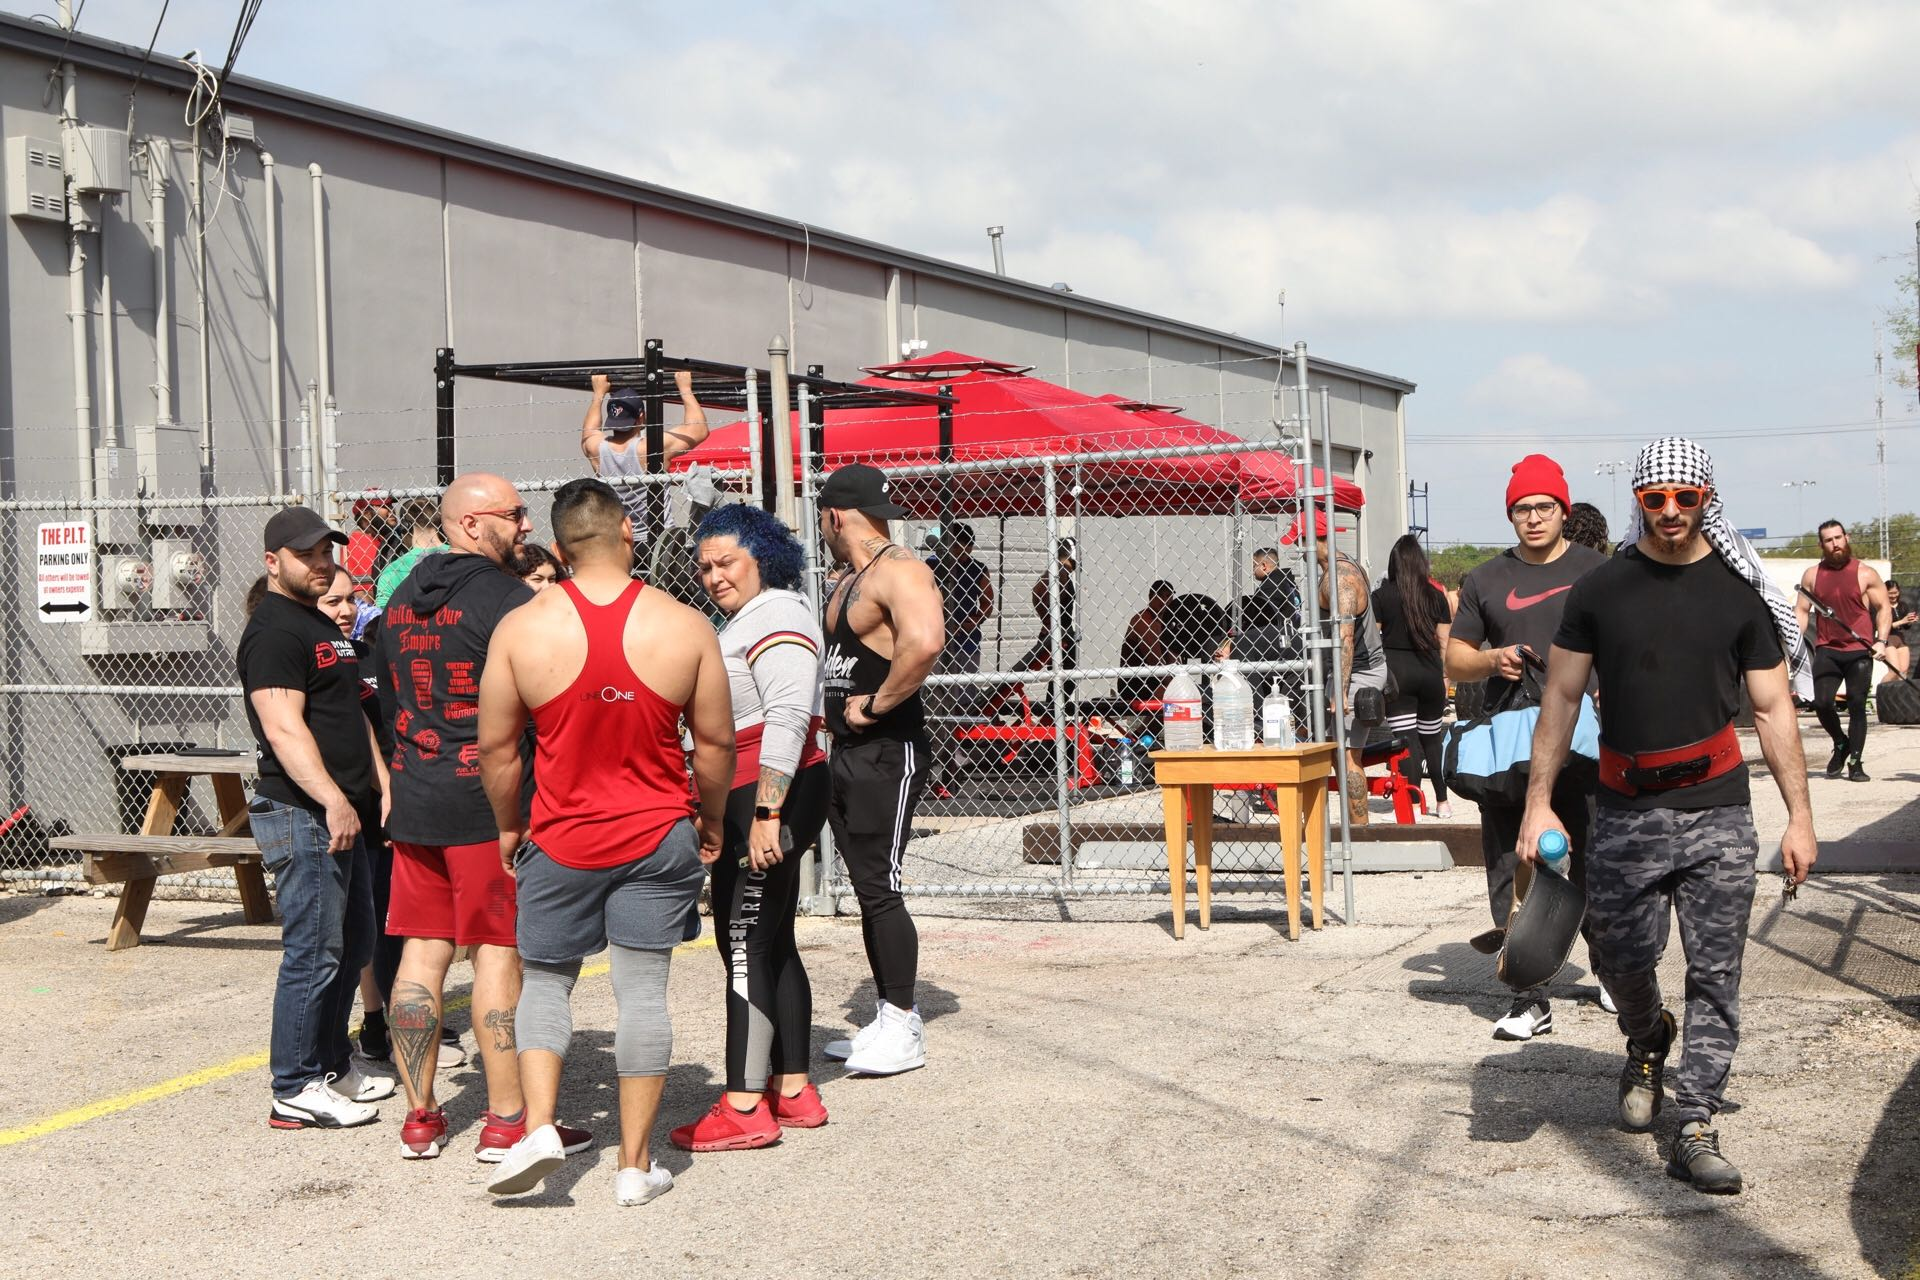 The P.I.T., a Northside gym, remained open Monday afternoon despite a statewide shutdown order for non-essential businesses.